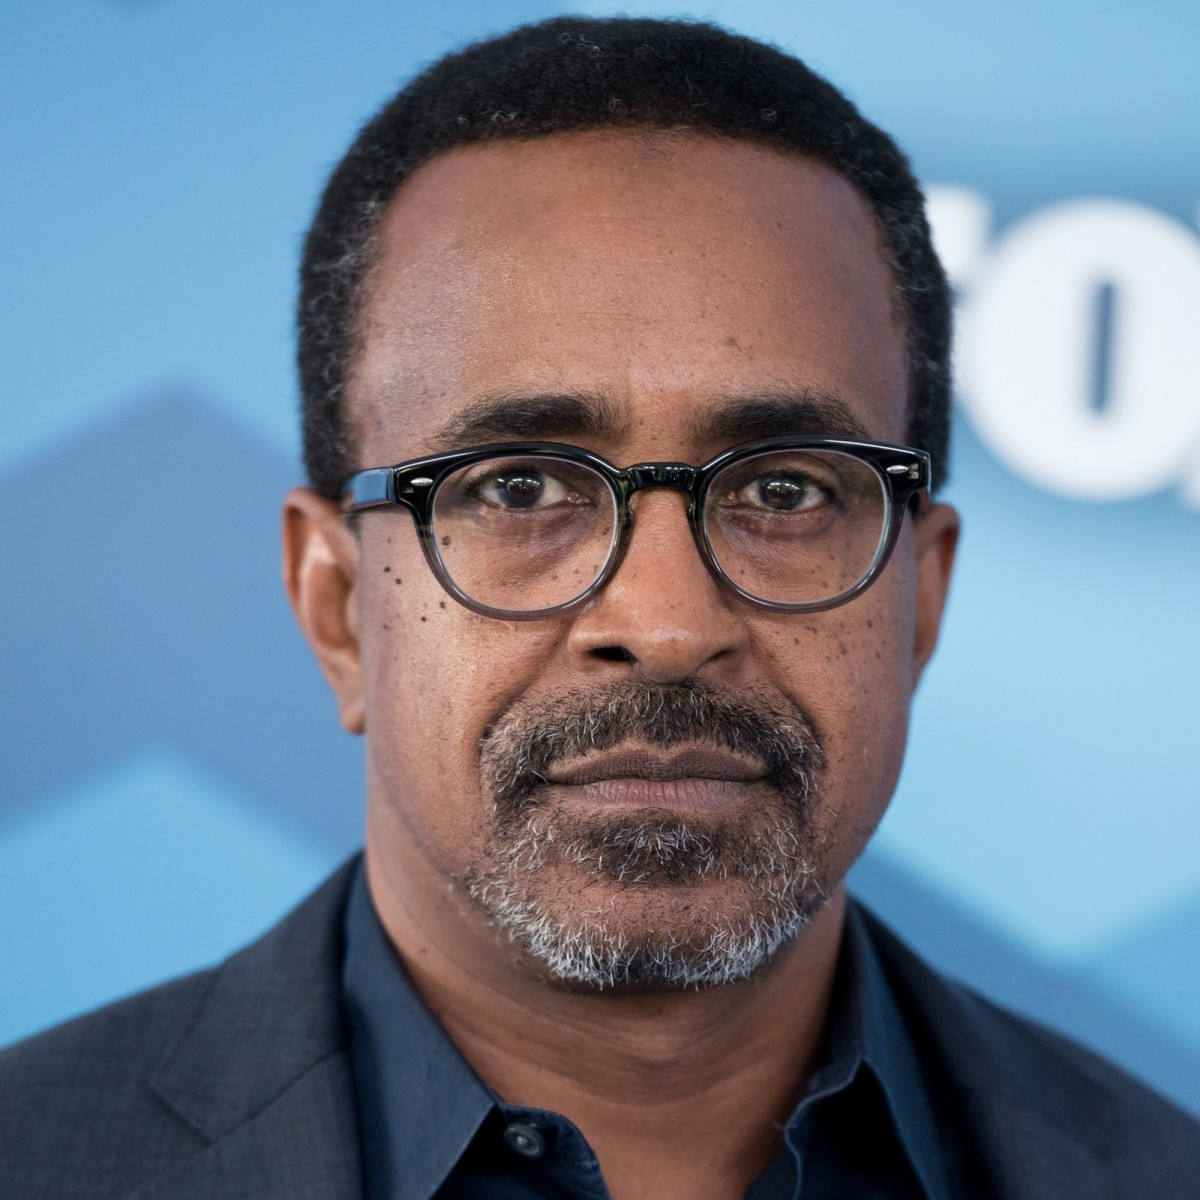 Tim Meadows photo via Getty Images